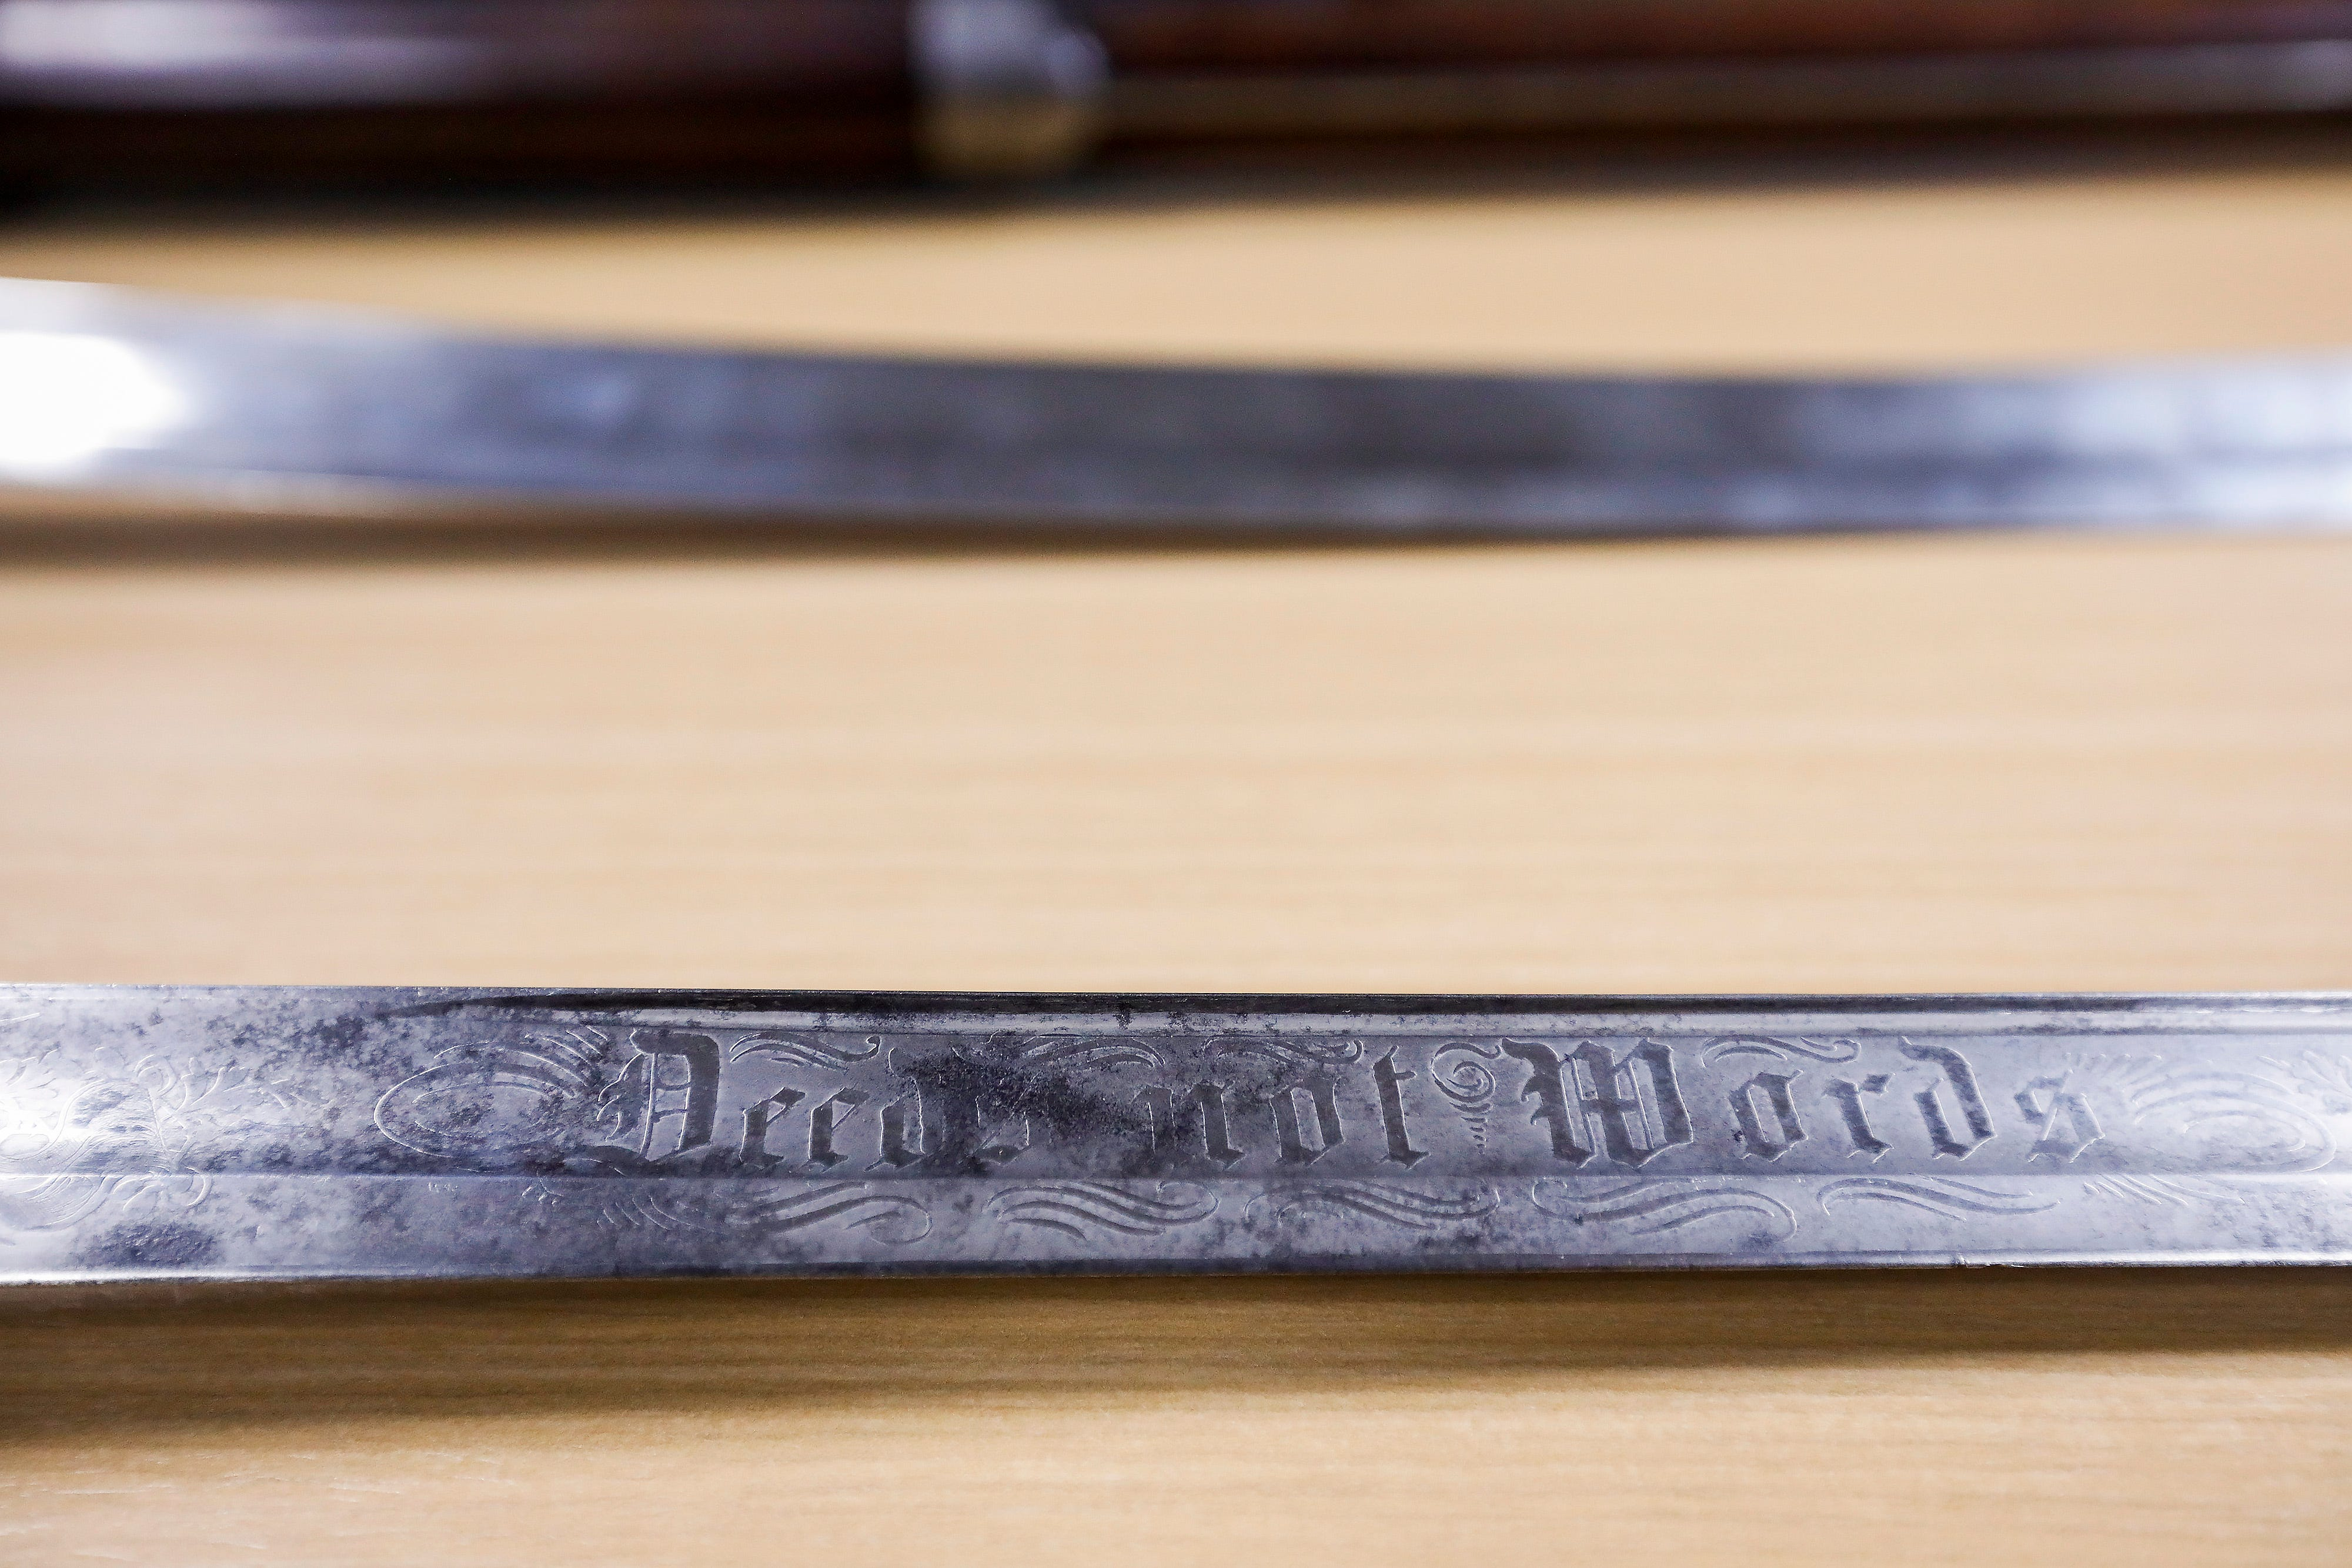 """The sword belonging to Civil War Captain J.F. Sanford is inscribed with """"Deeds not Words."""" The sword is one of the artifacts that will be on display after renovations are completed to the visitors center at Wilson's Creek National Battlefield."""